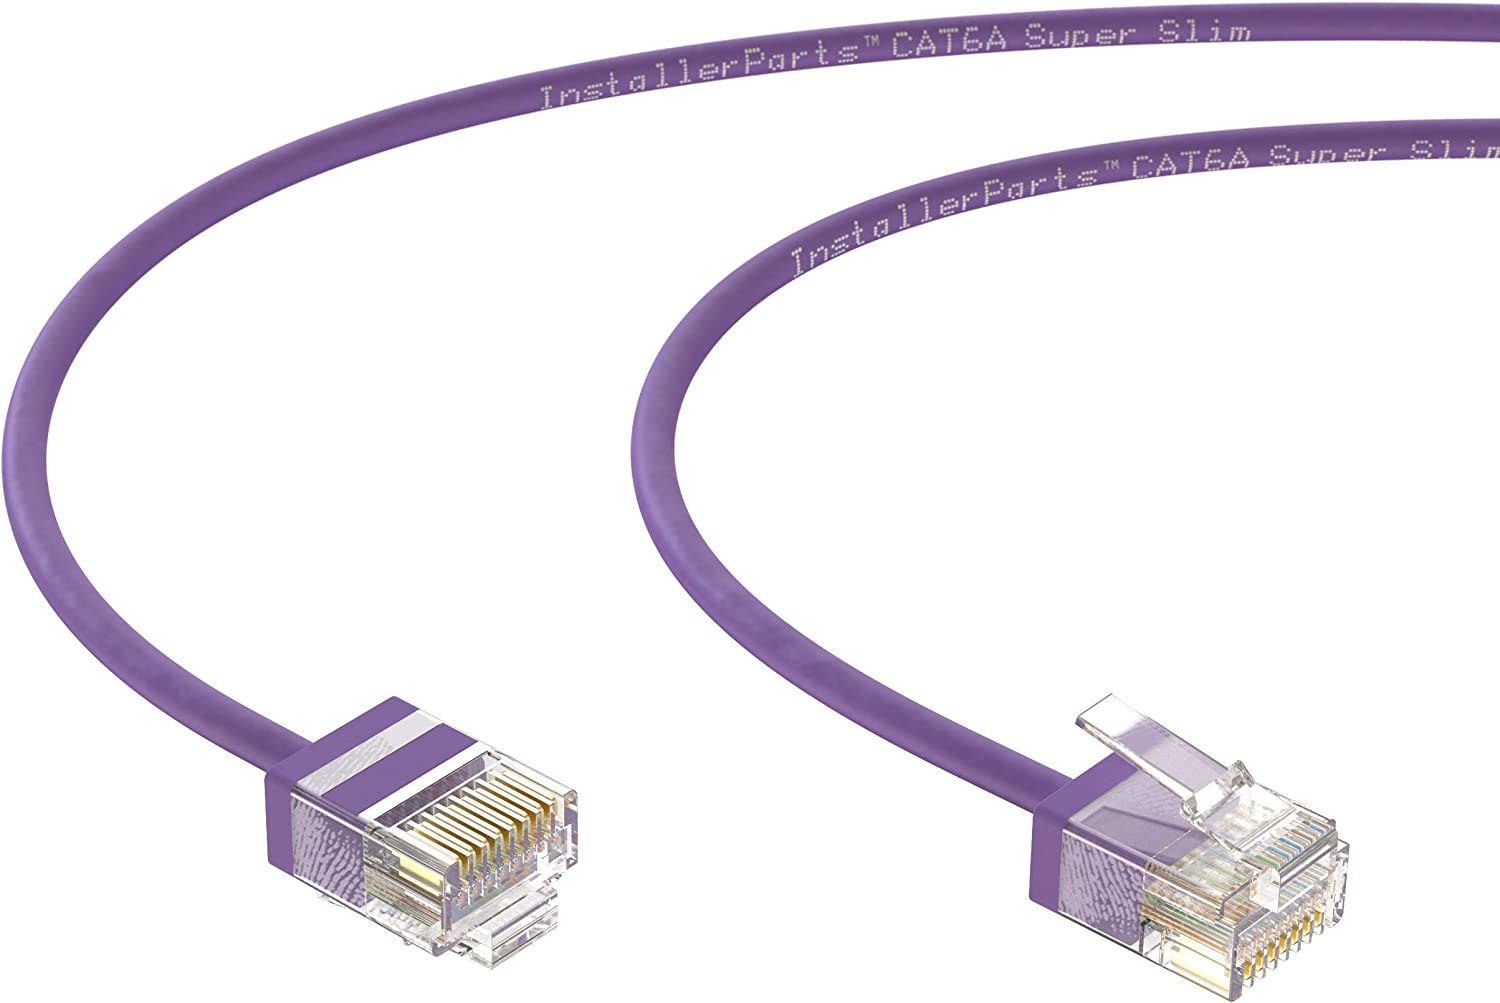 Professional Series InstallerParts Ethernet Cable CAT6A Super Slim Cable UTP 1.5 FT - White 550MHZ 10Gigabit//Sec Network//High Speed Internet Cable 10 Pack 32AWG